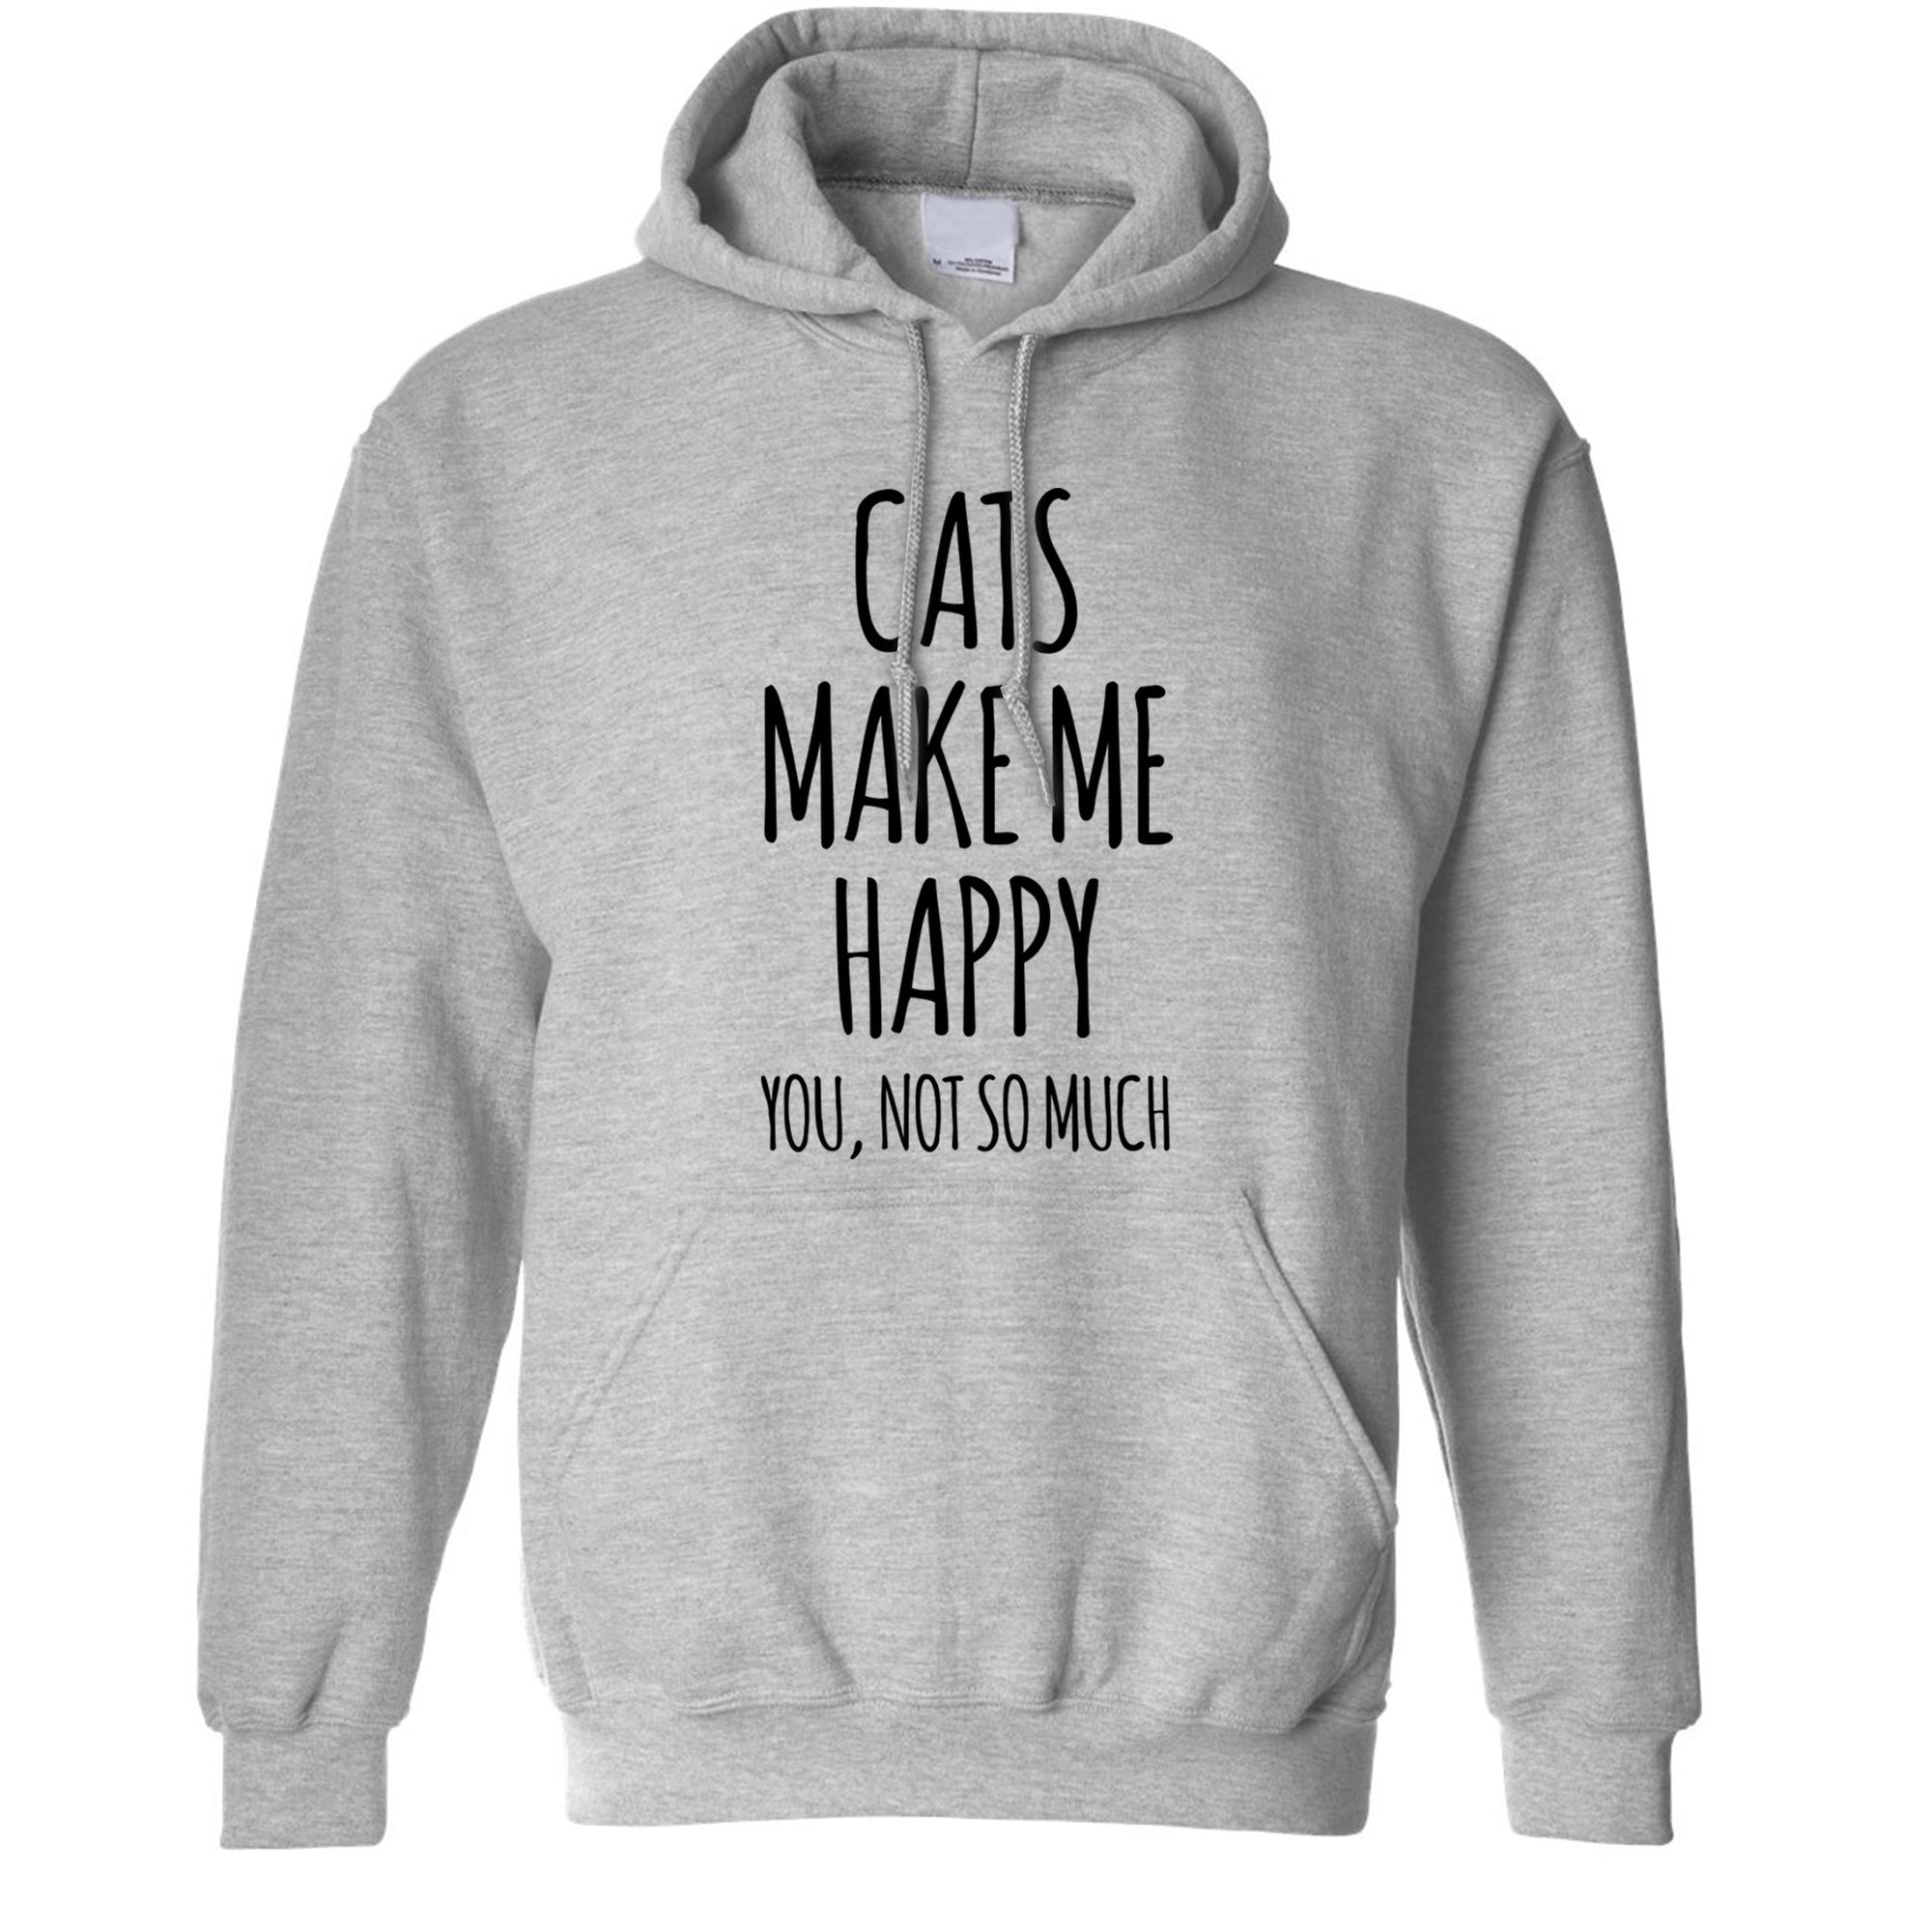 Novelty Hoodie Cats Make Me Happy, You, Not So Much Hooded Jumper